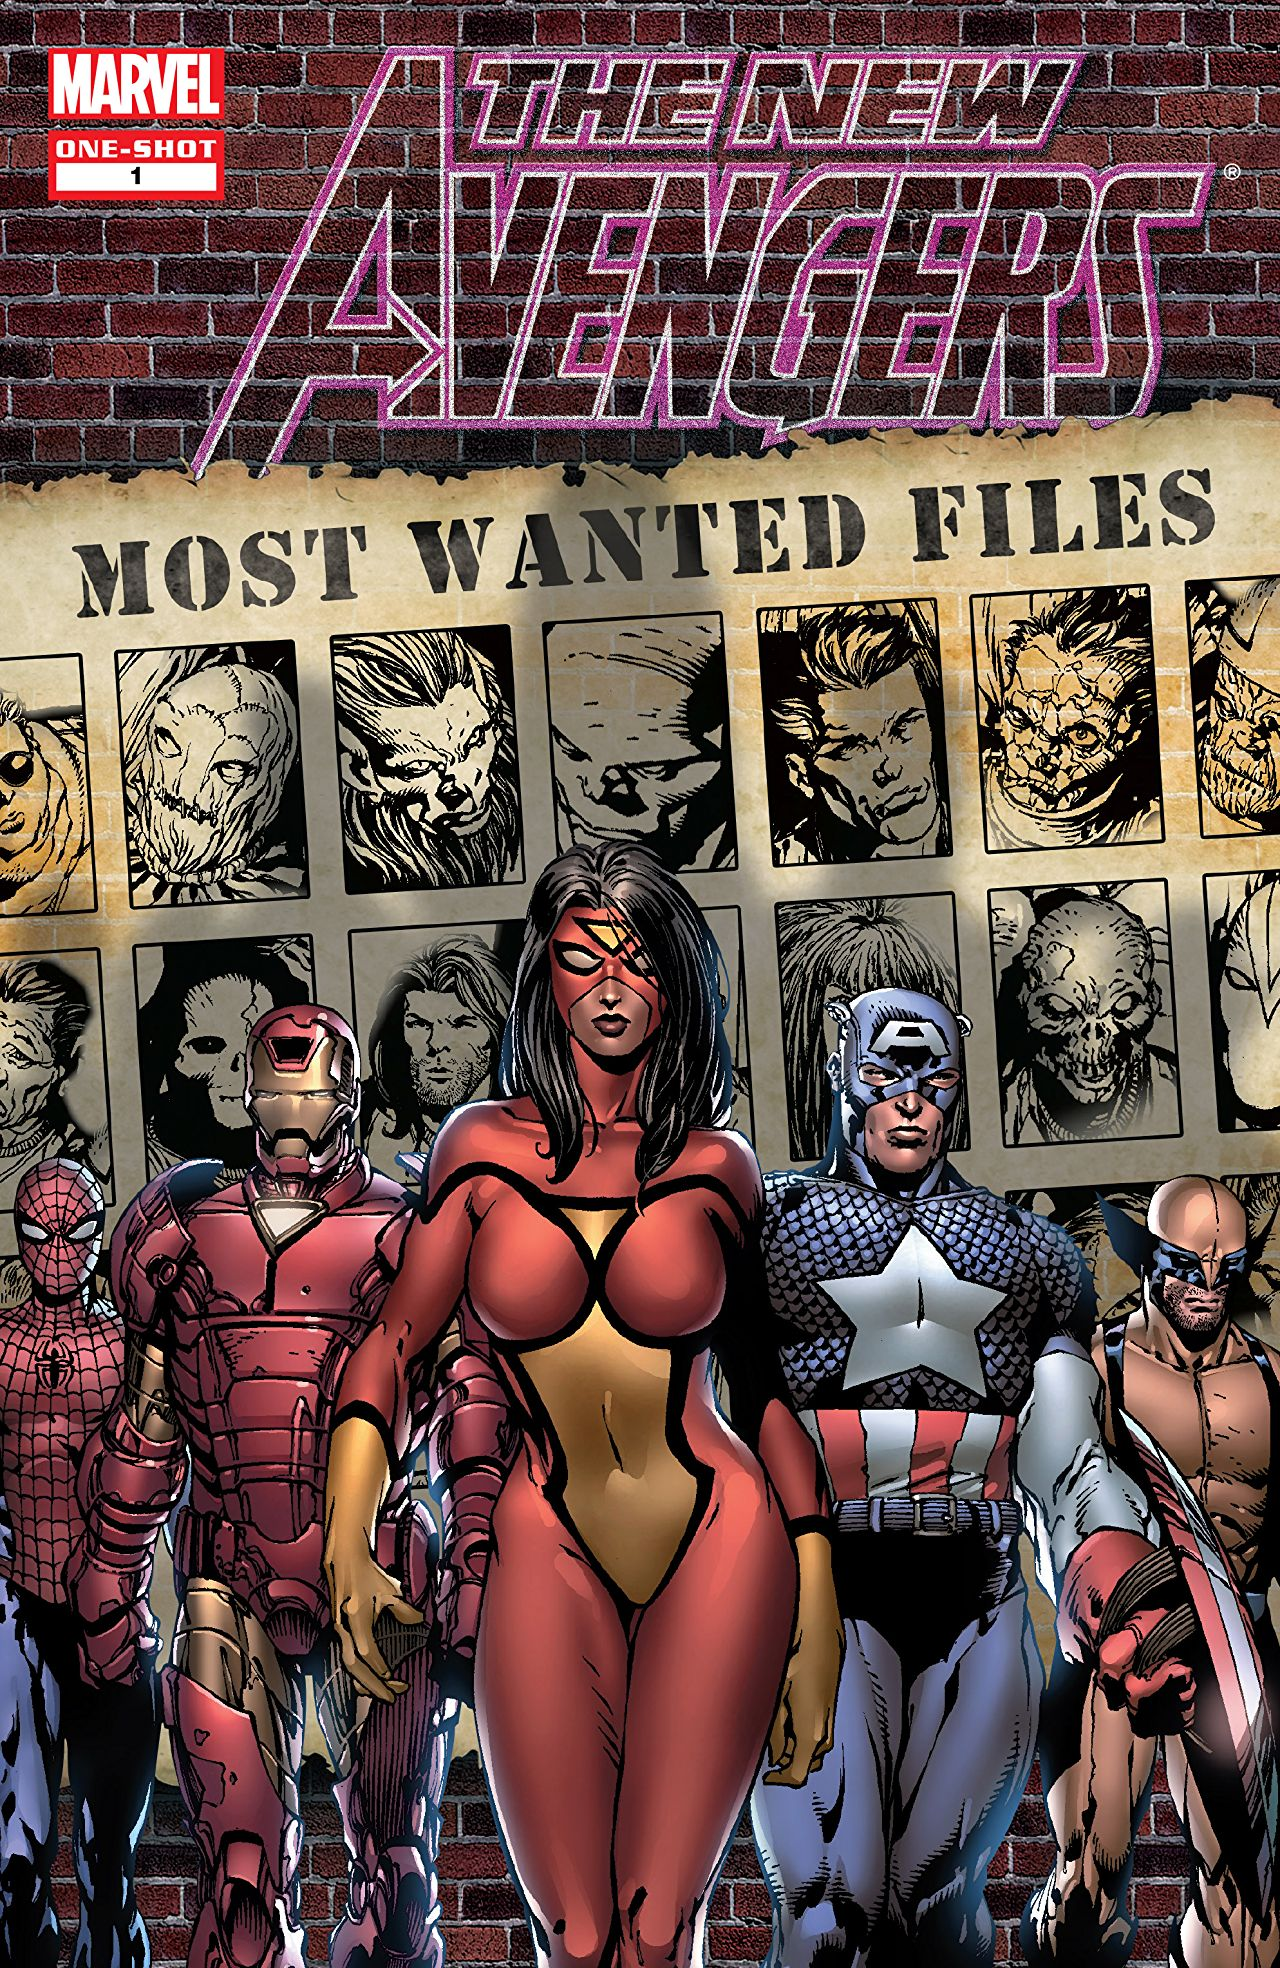 New Avengers Most Wanted Files Vol 1 1.jpg